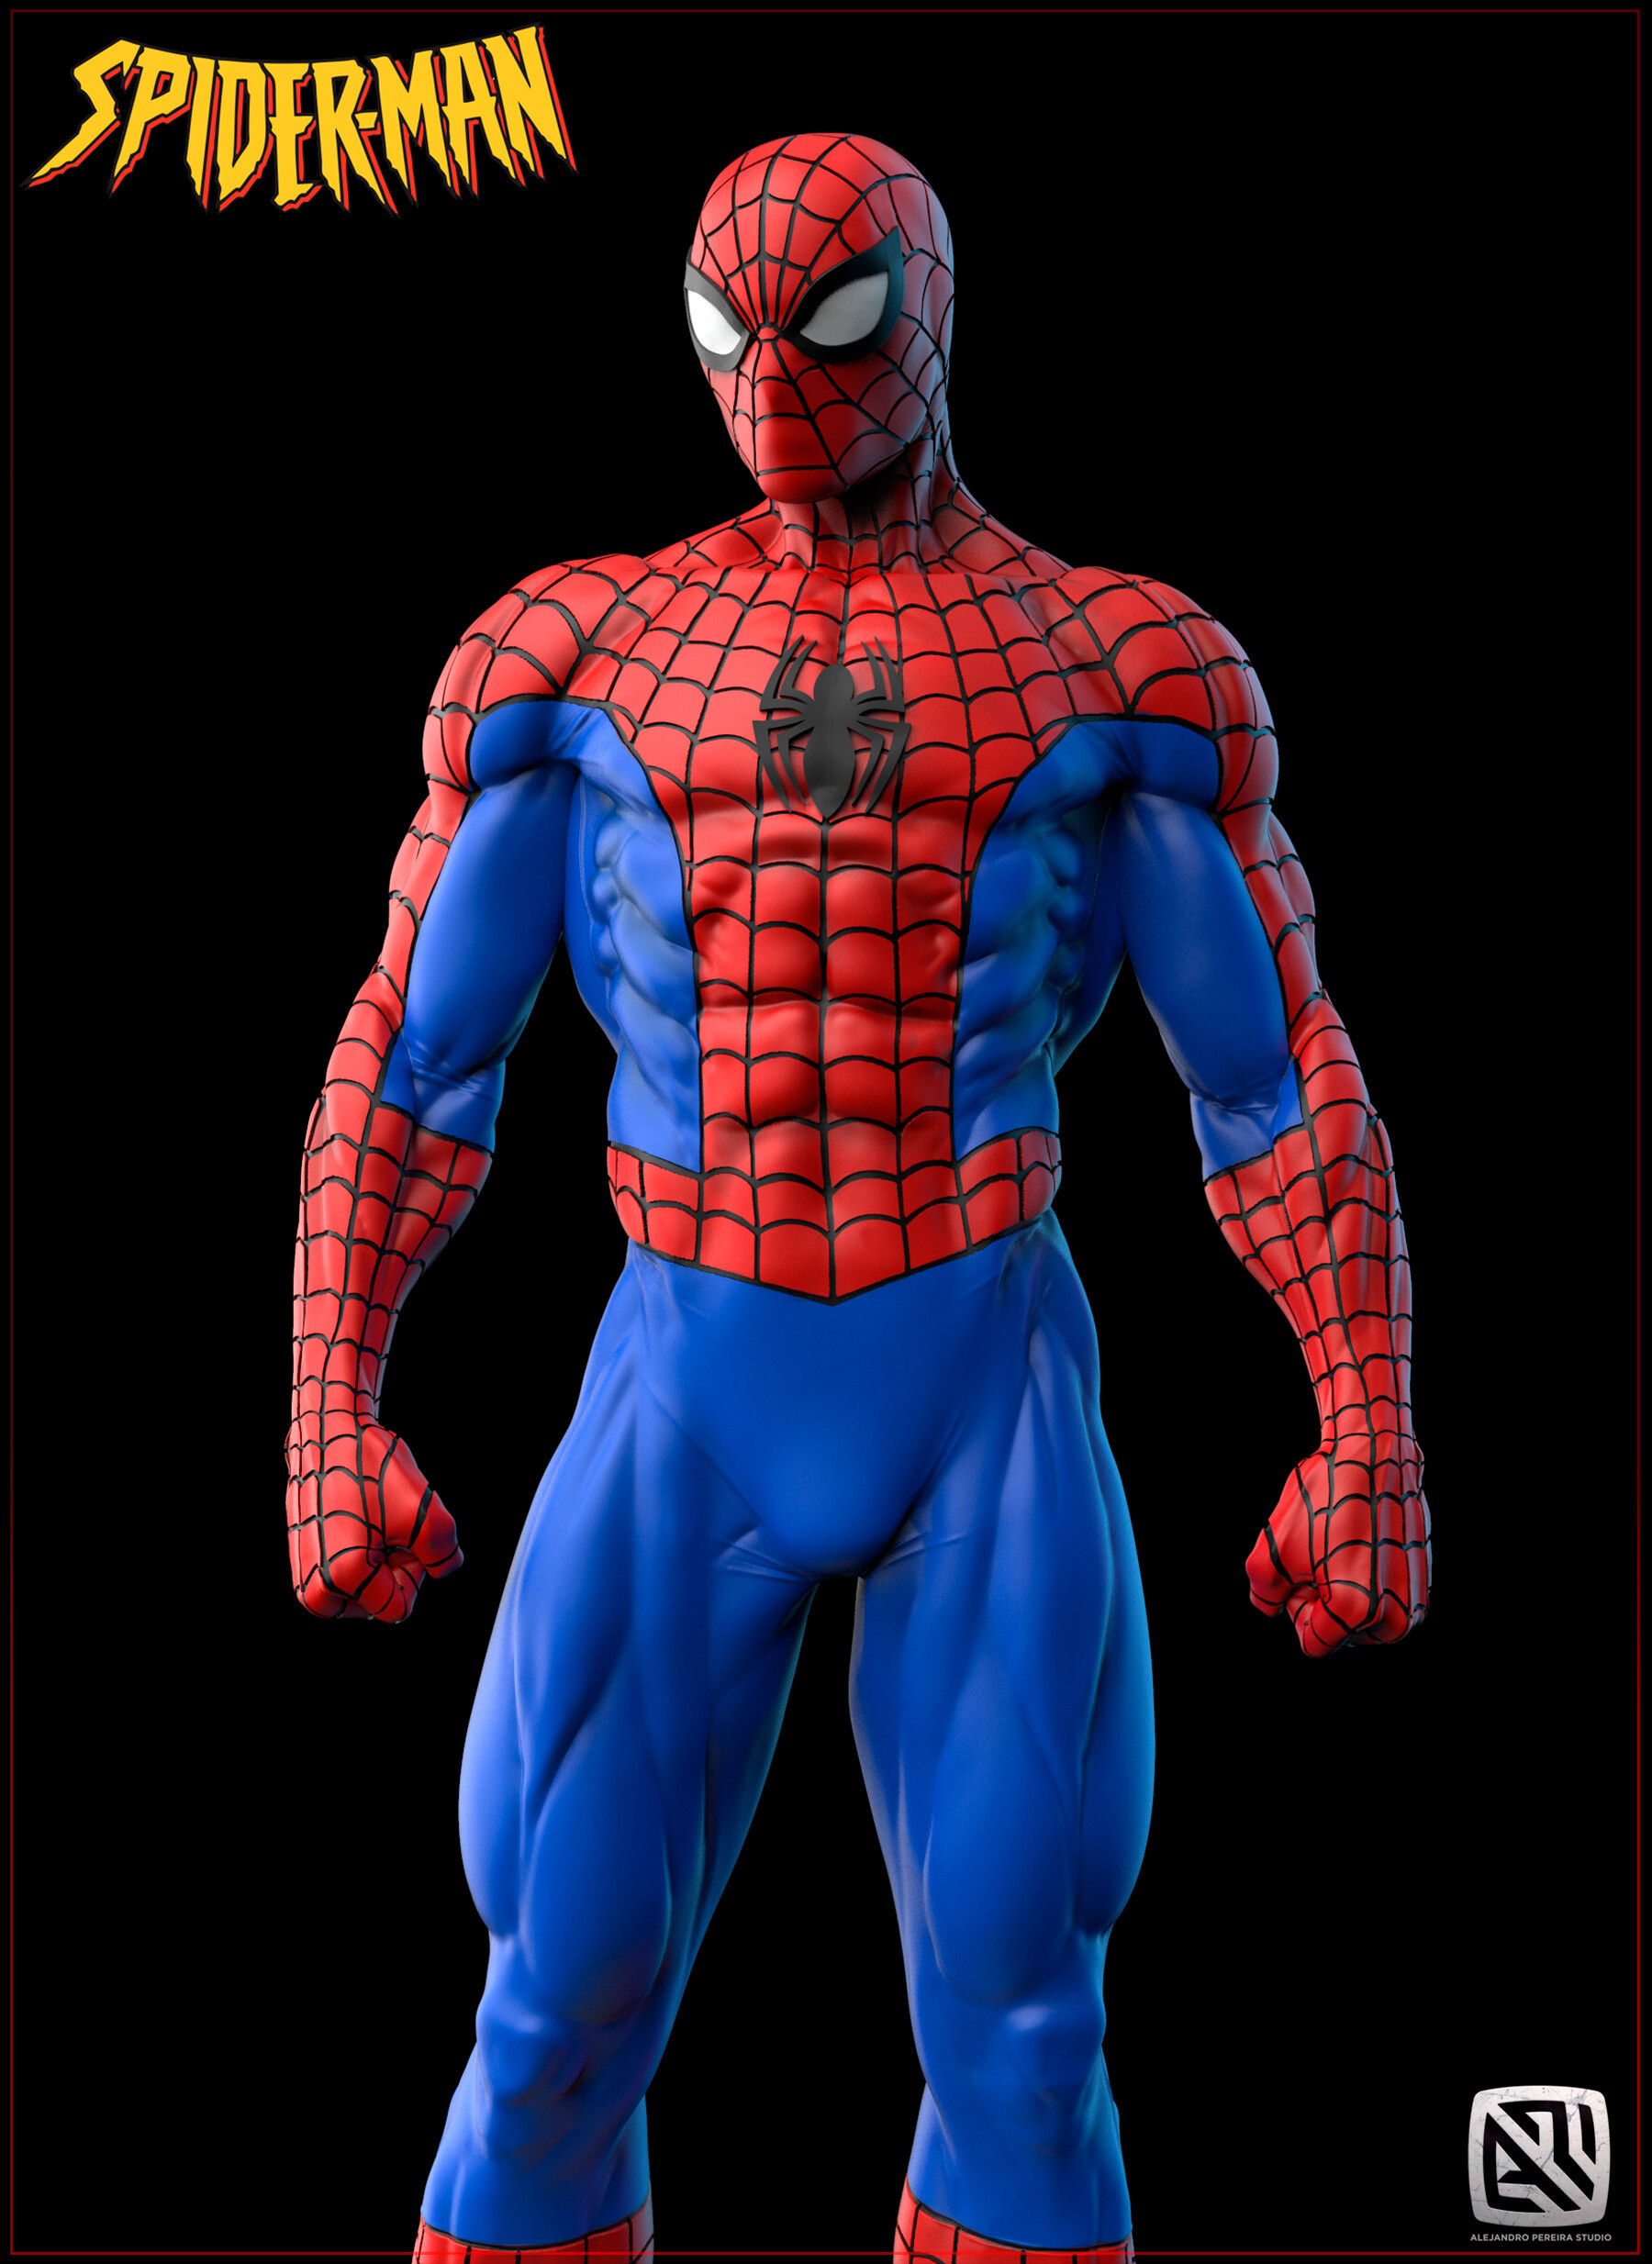 Alejandro pereira spidey render color 08